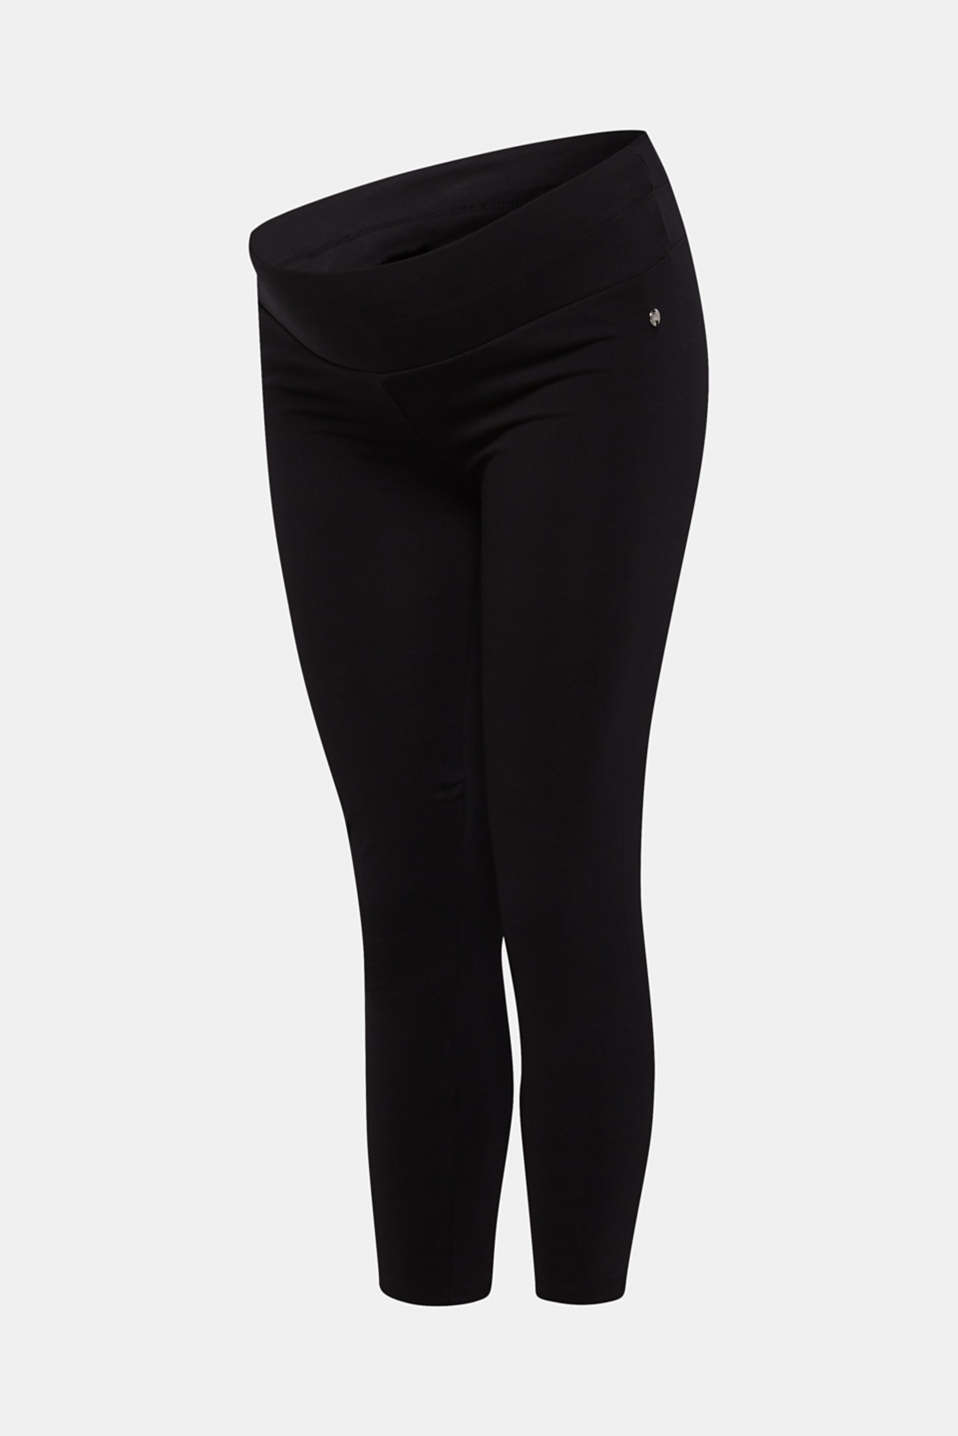 Leggings with an under-bump waistband, LCBLACK, detail image number 3